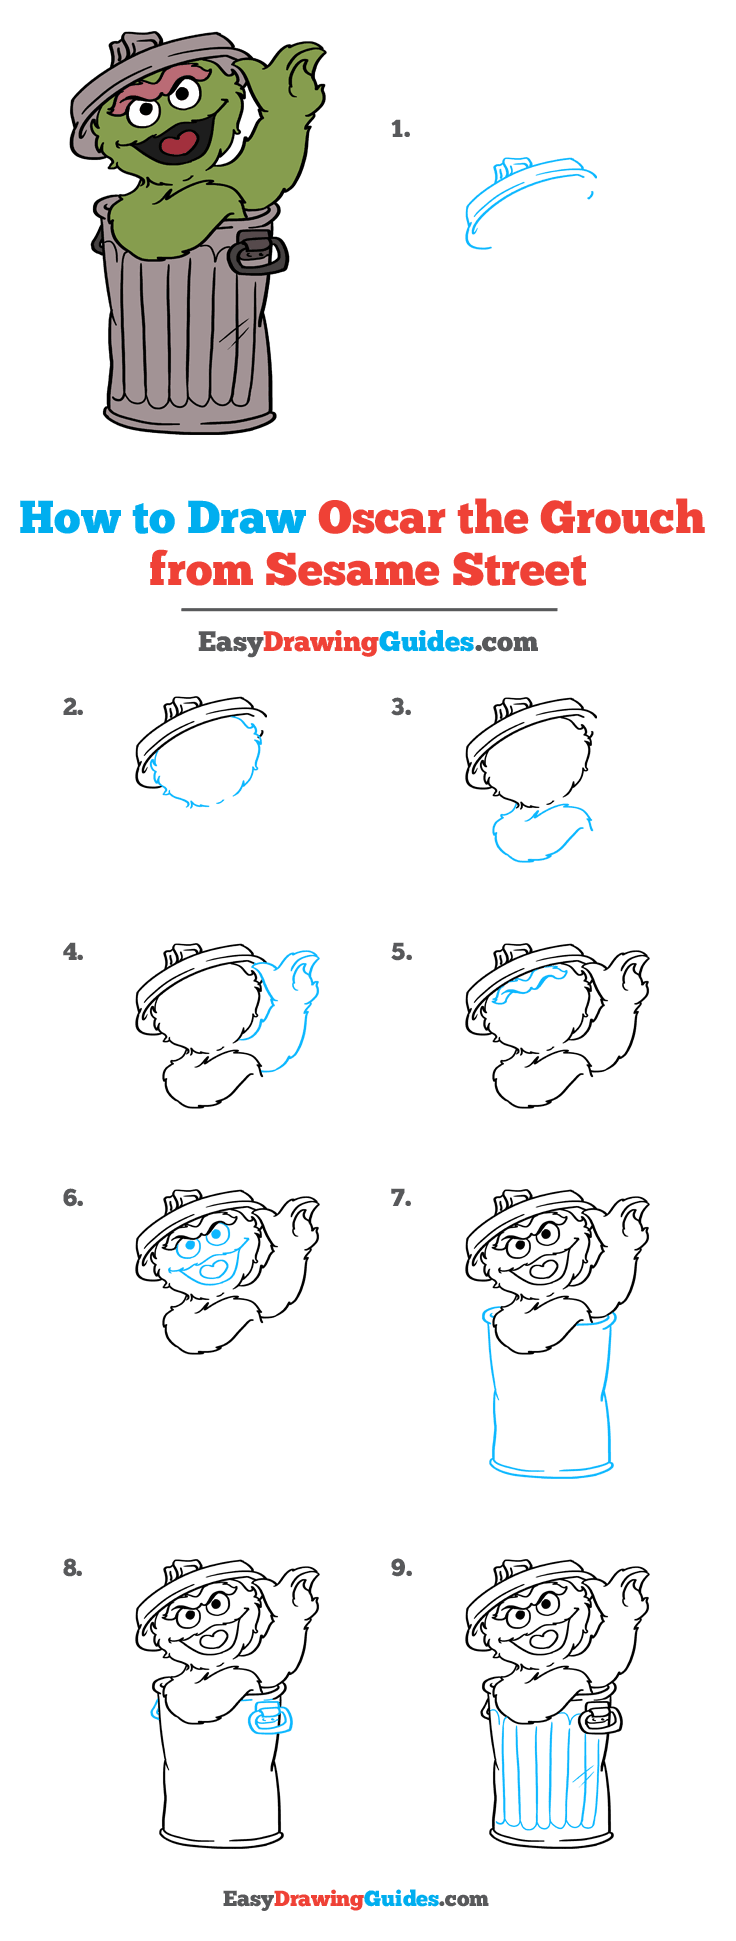 How to Draw Oscar Grouch from Sesame Street